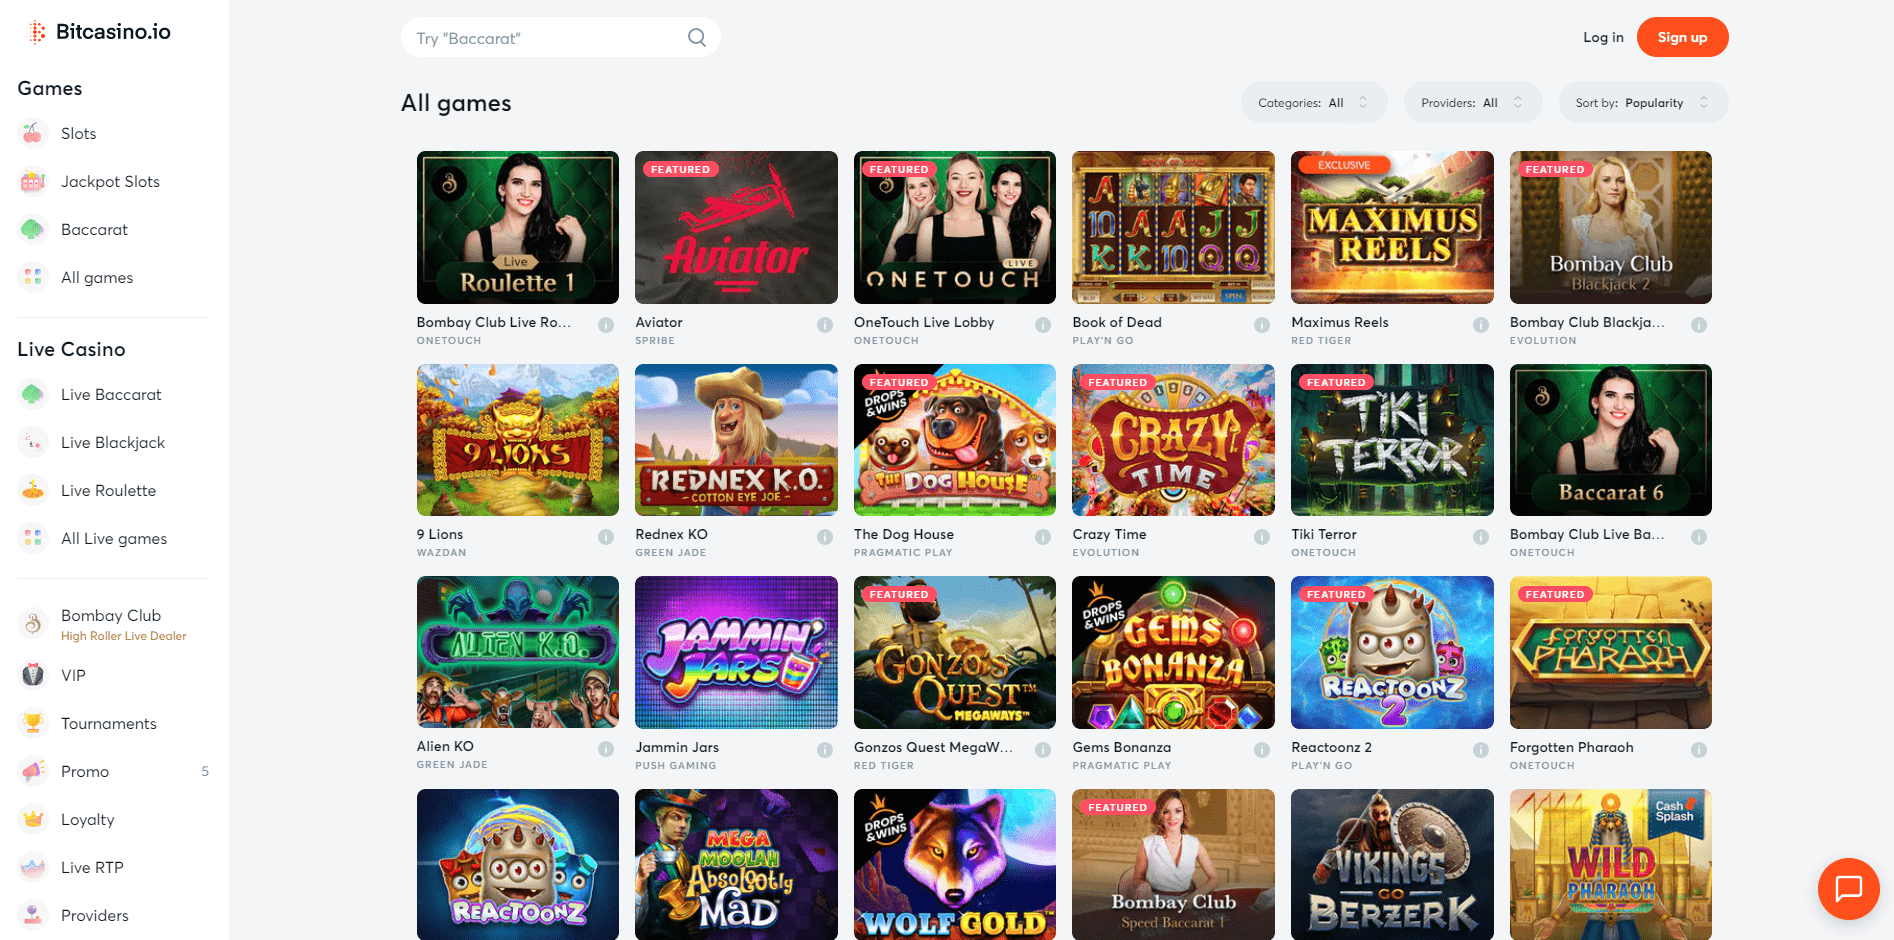 Some of the games on offer in Bitcasino.io